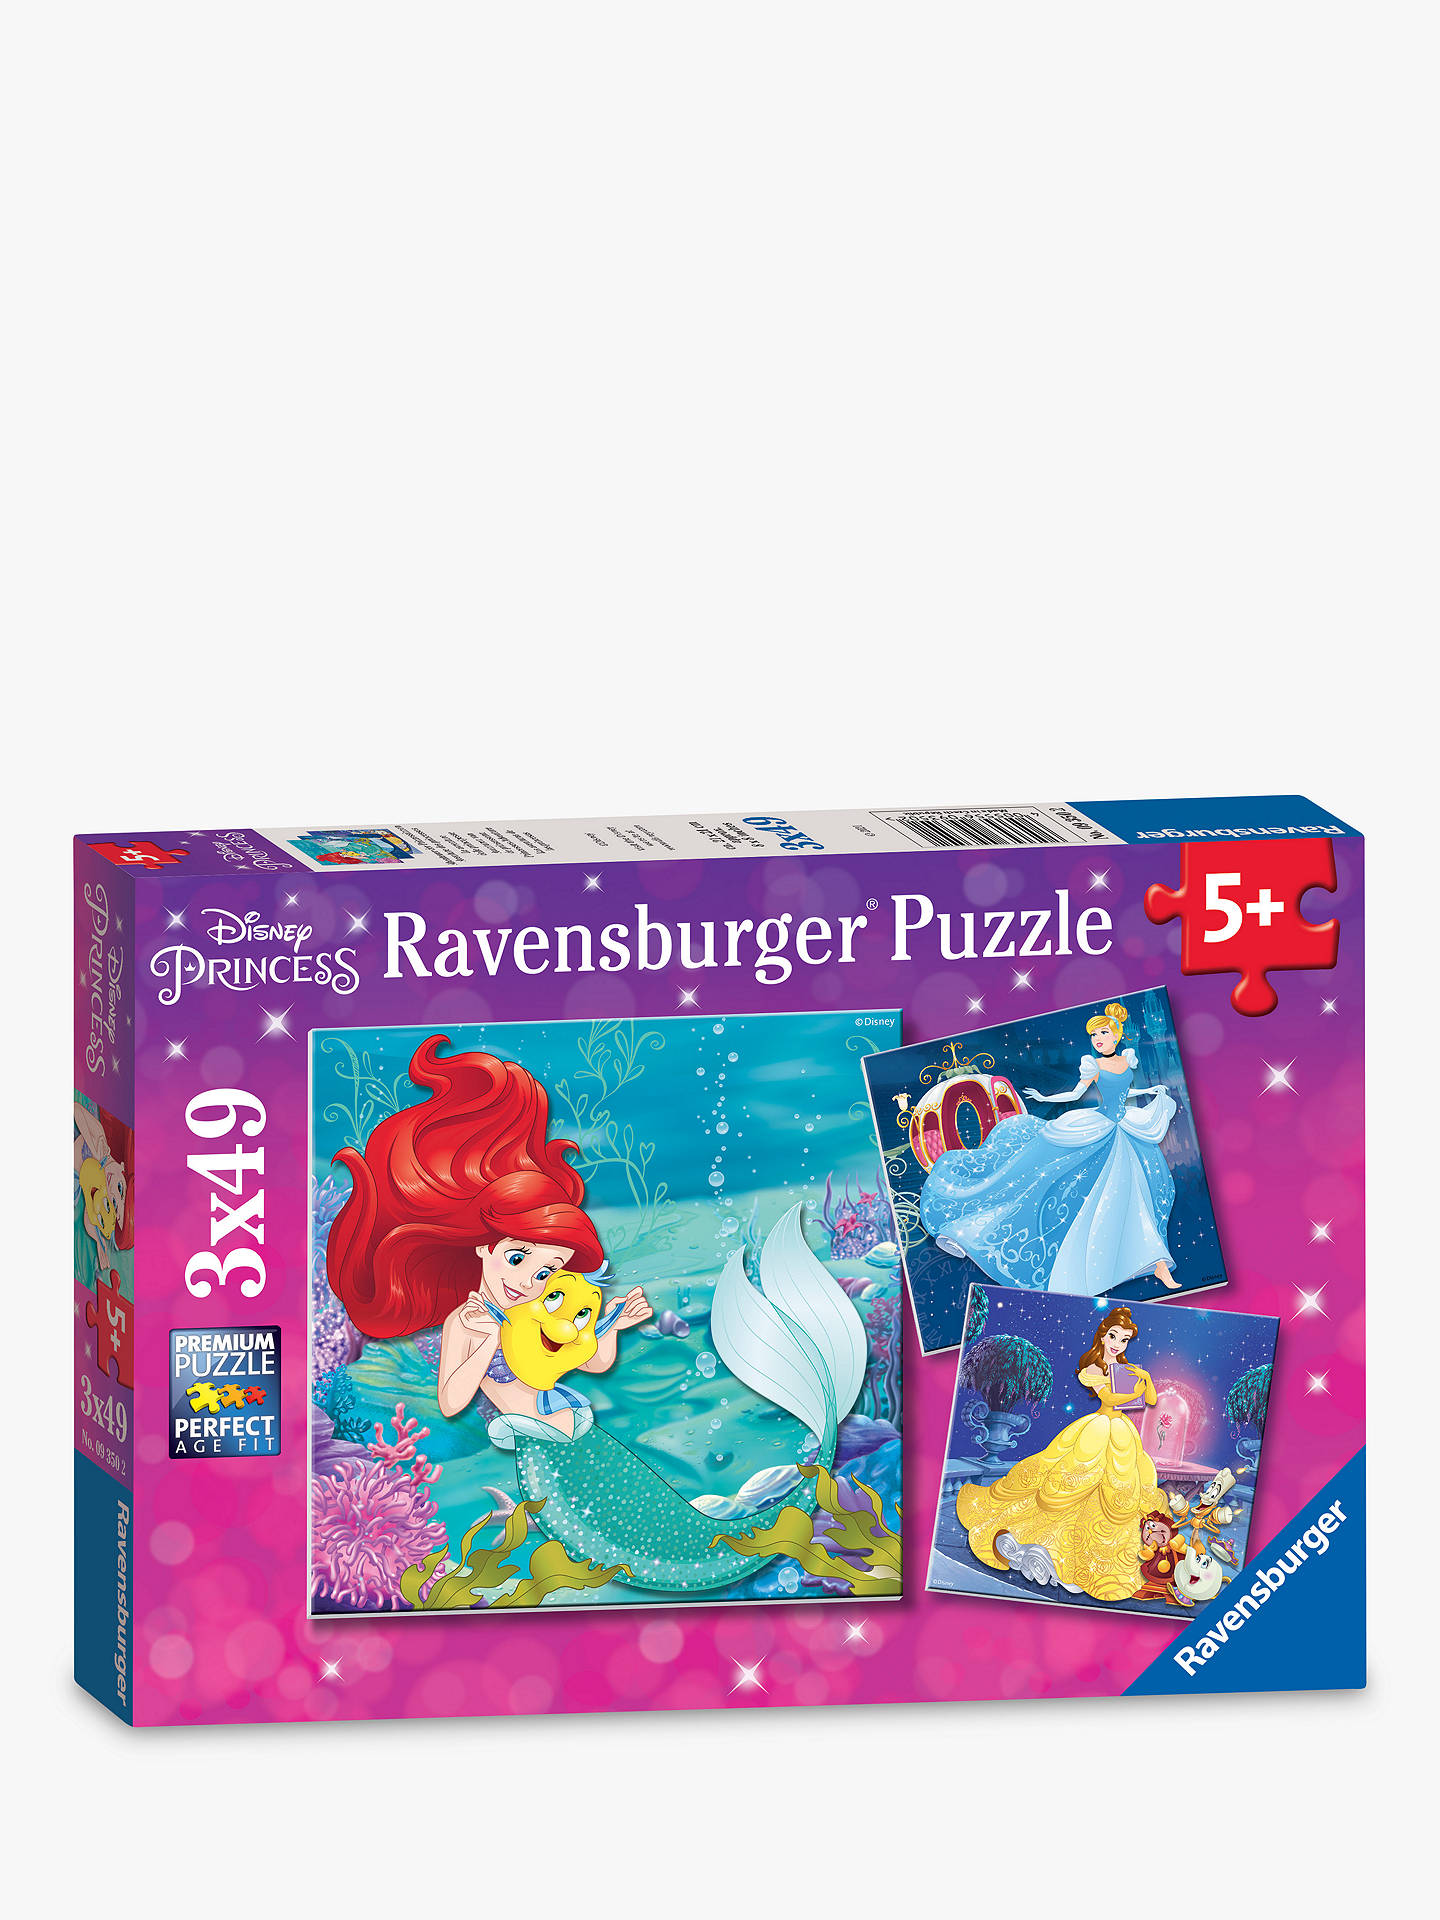 Ravensburger Disney Princess Jigsaw Puzzles, Box of 3